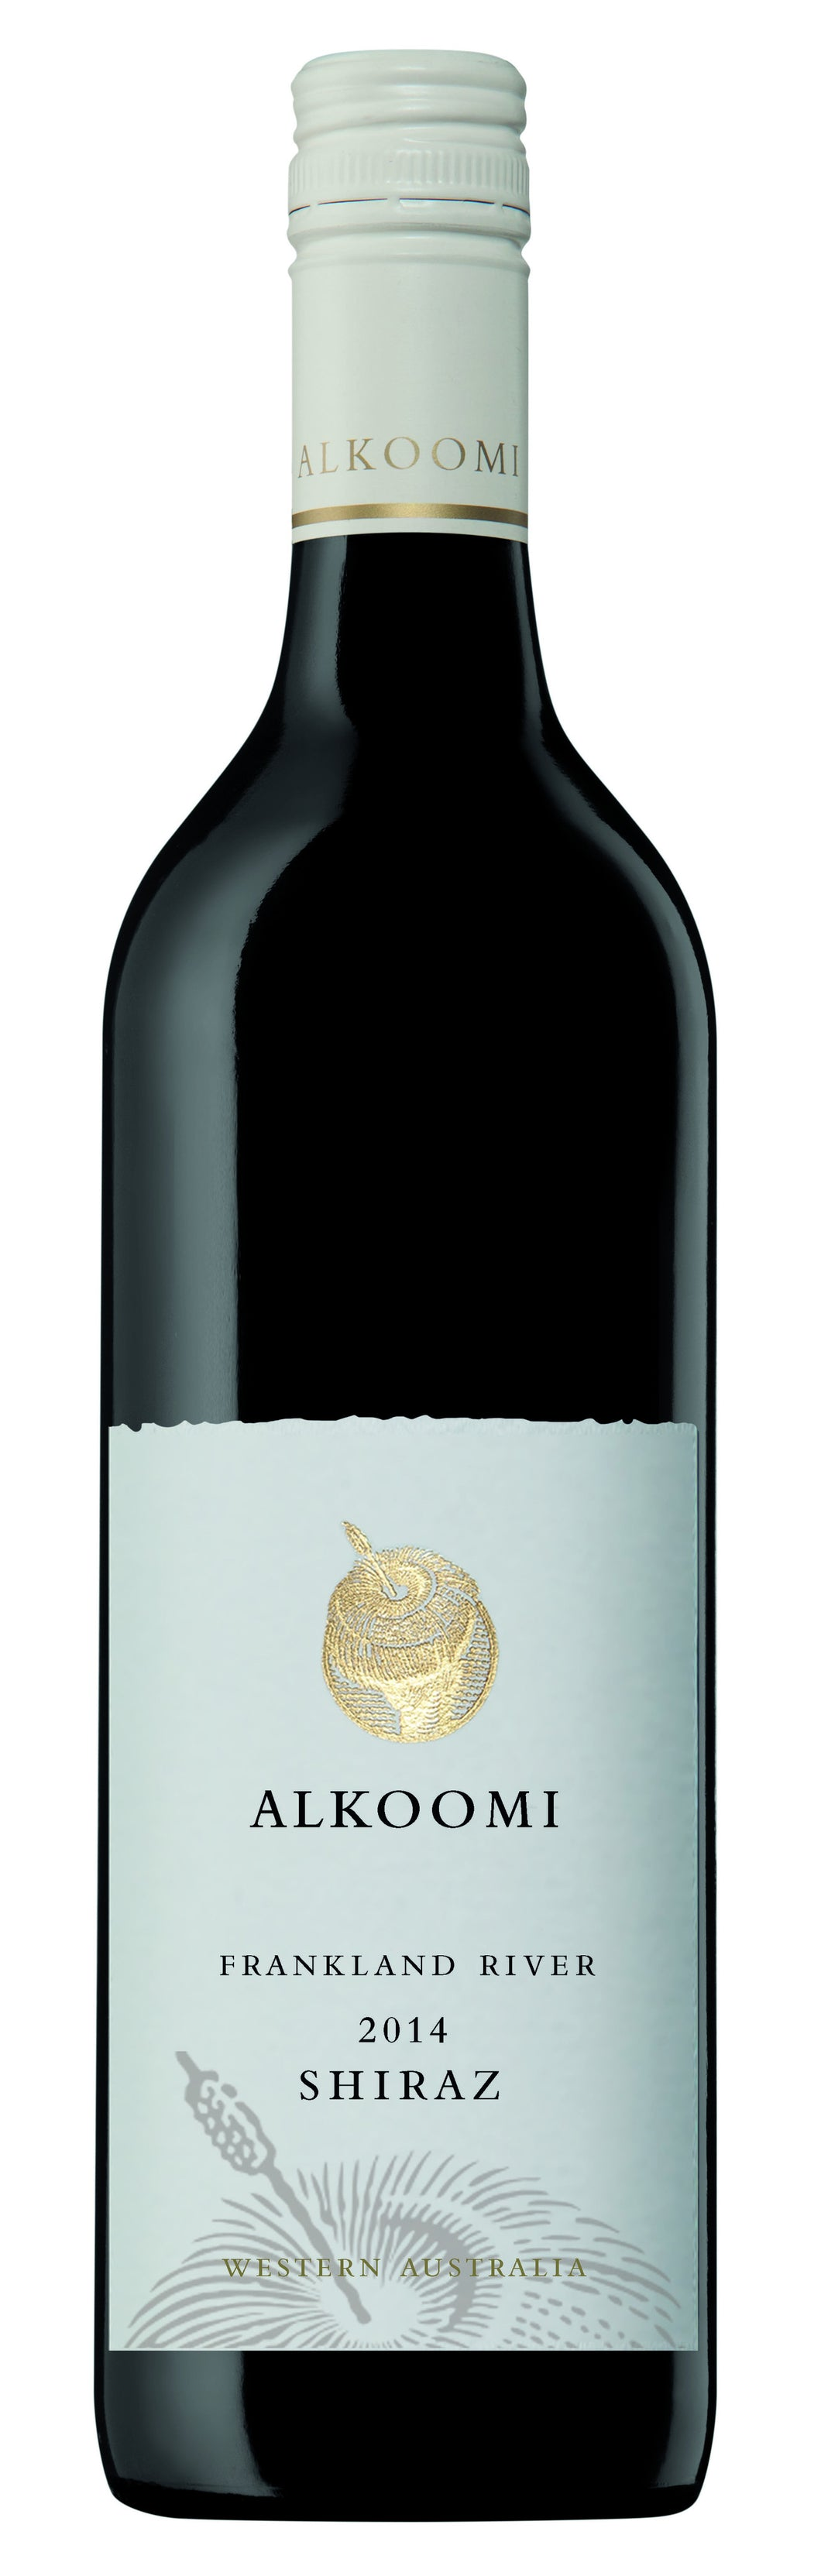 Alkoomi White Label Shiraz 2014 - Network Wines